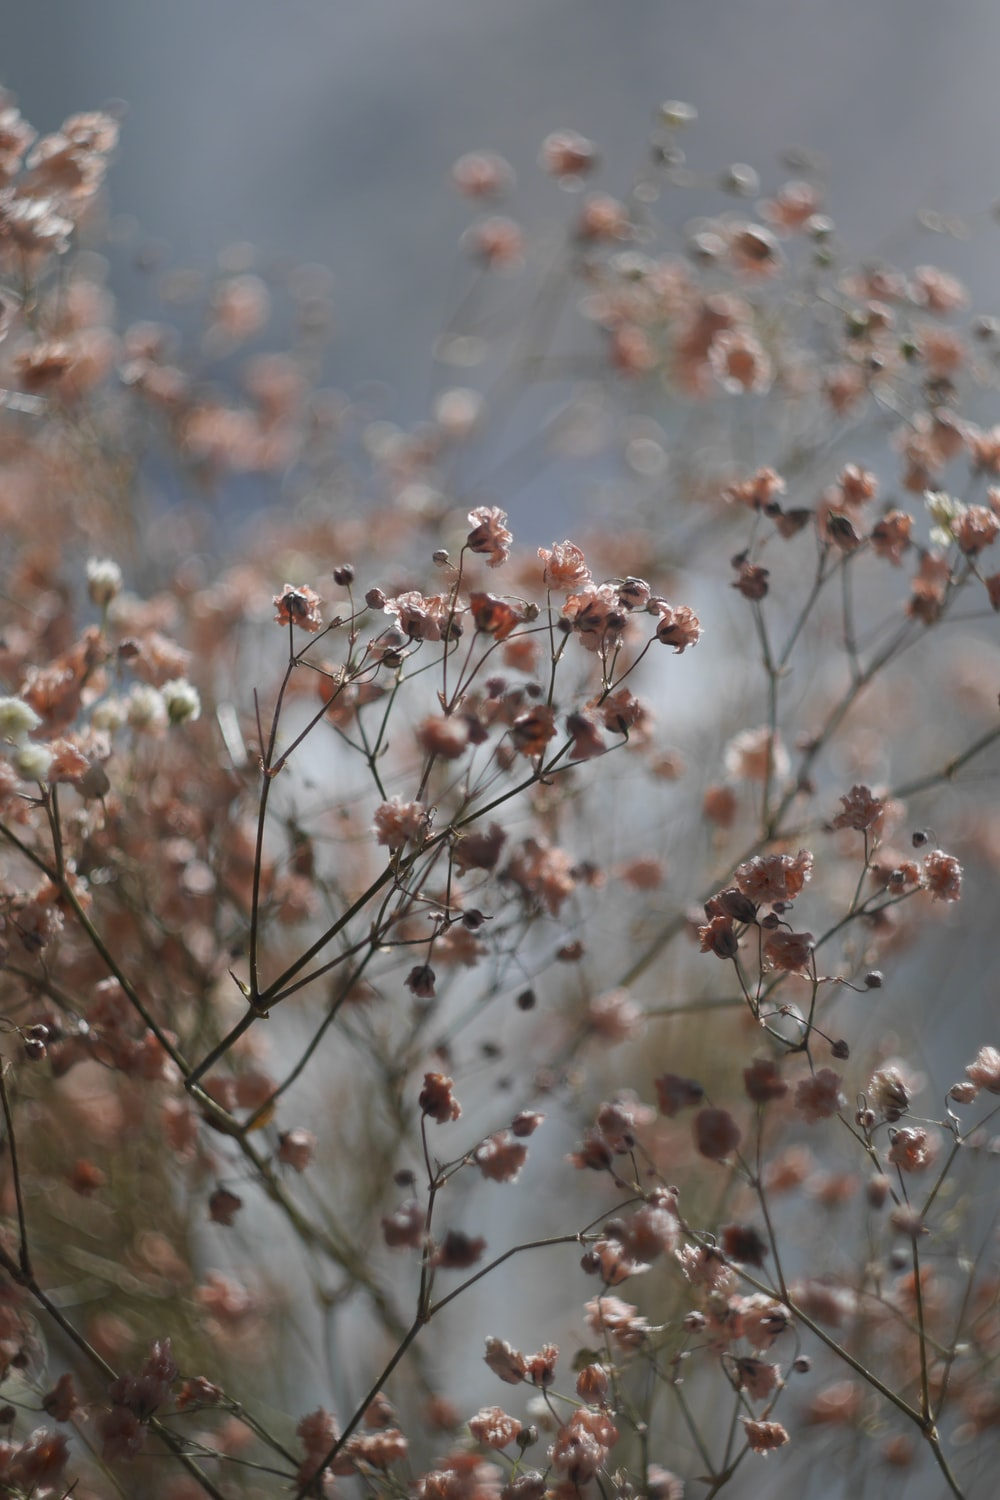 white and brown flowers during daytime